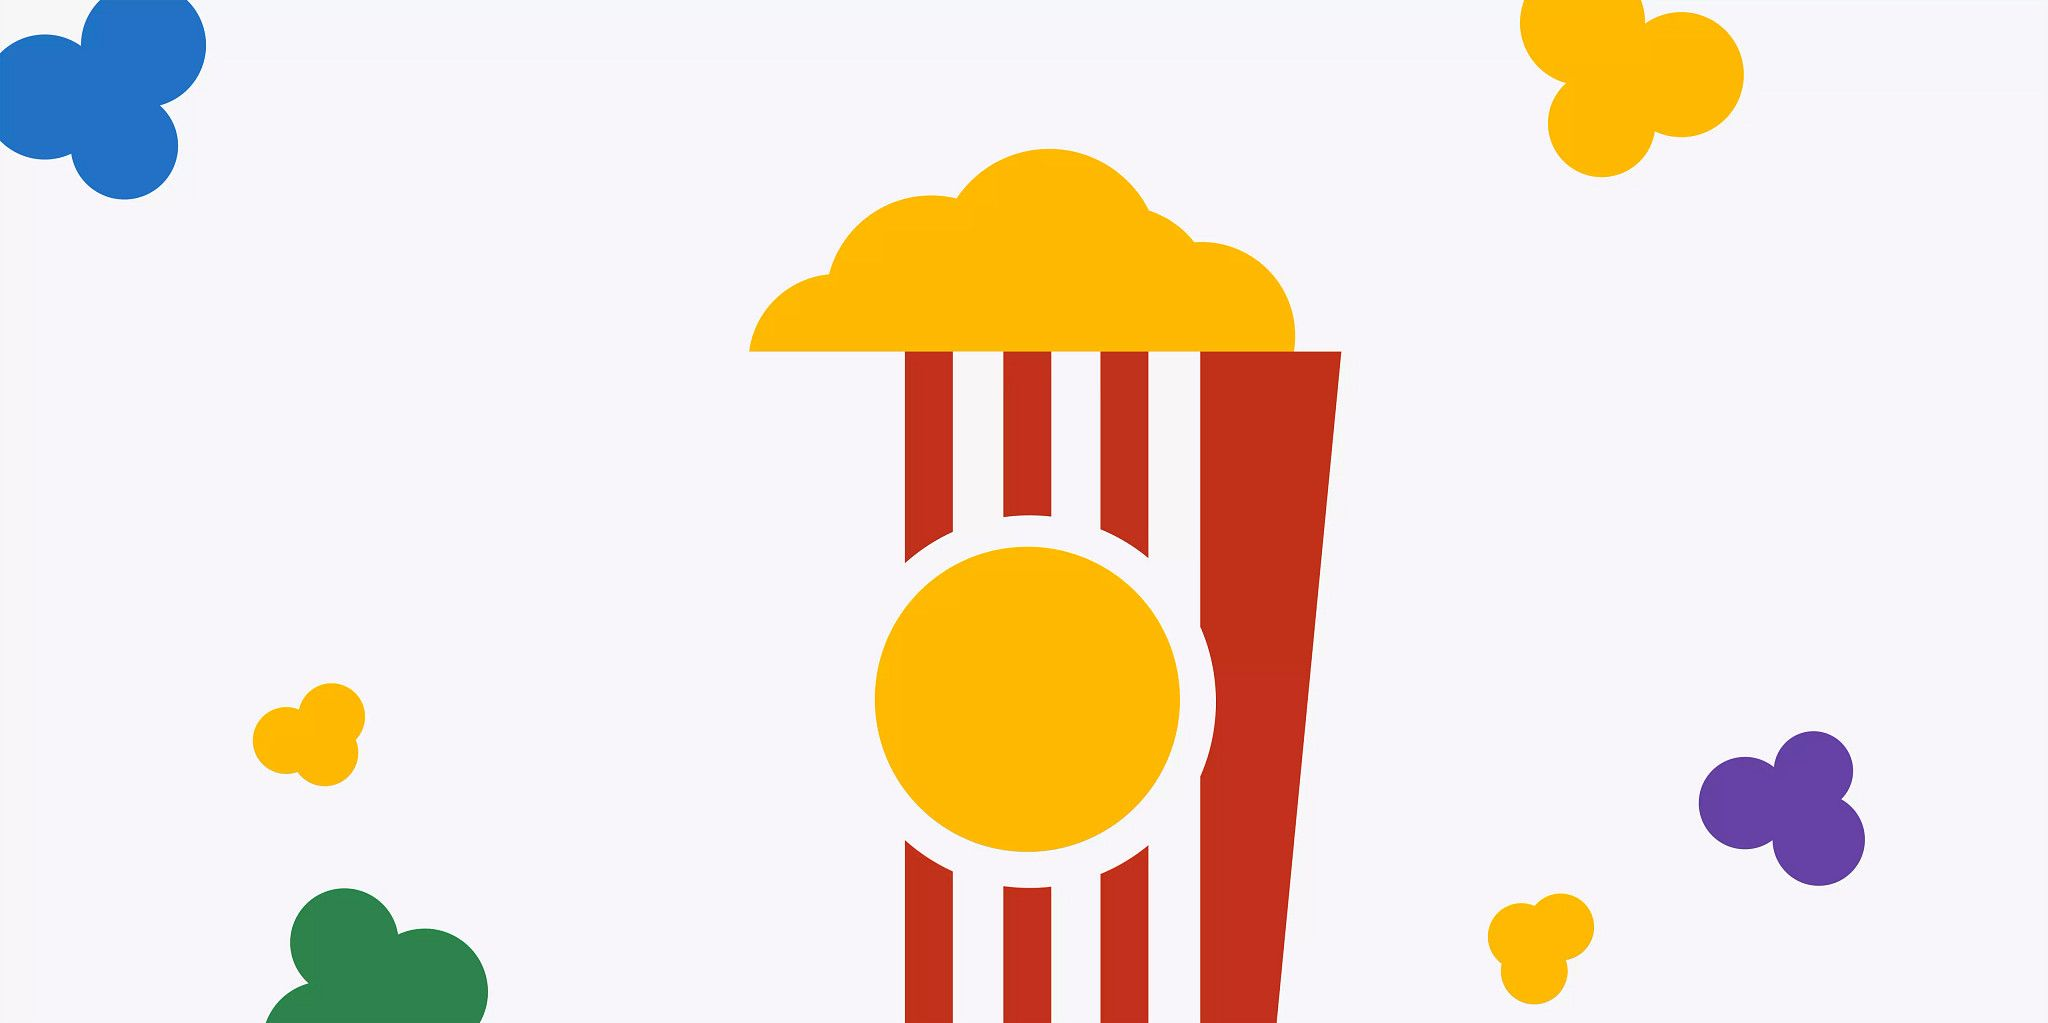 Graphic illustration of colorful popcorn around the edges and a container of popcorn in the middle.